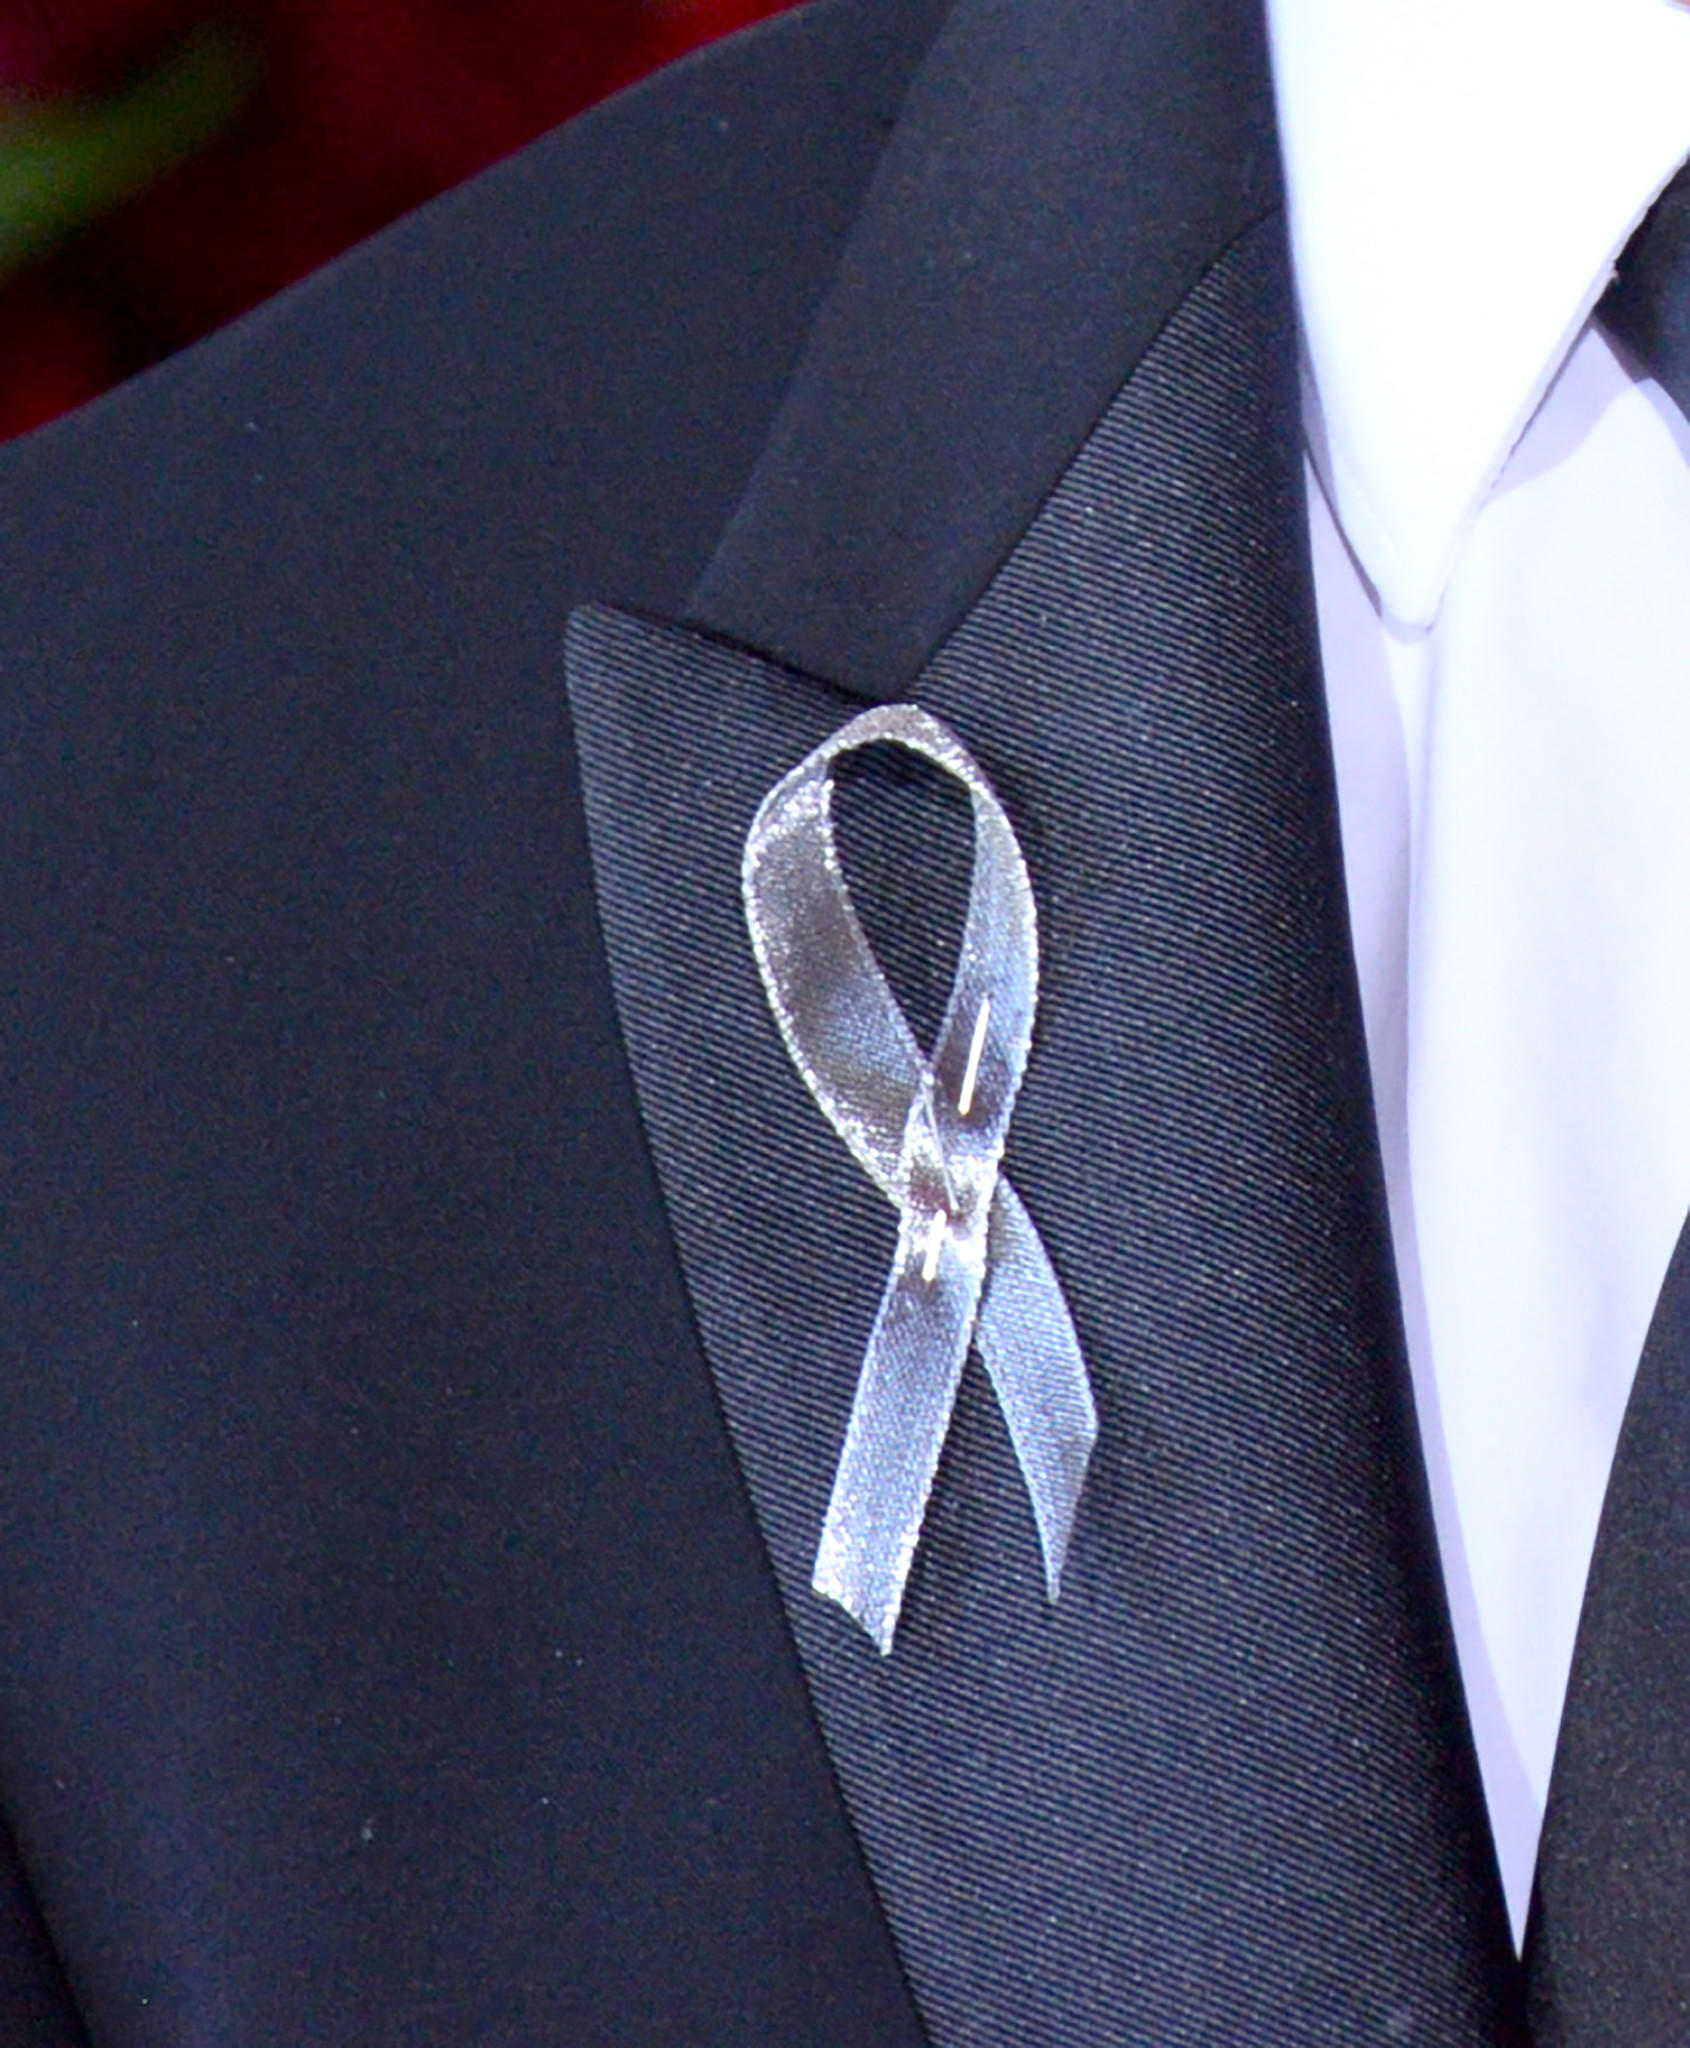 Tony Awards show attendees wore silver ribbons in remembrance for Orlando. (Charles Sykes / Invision/AP)